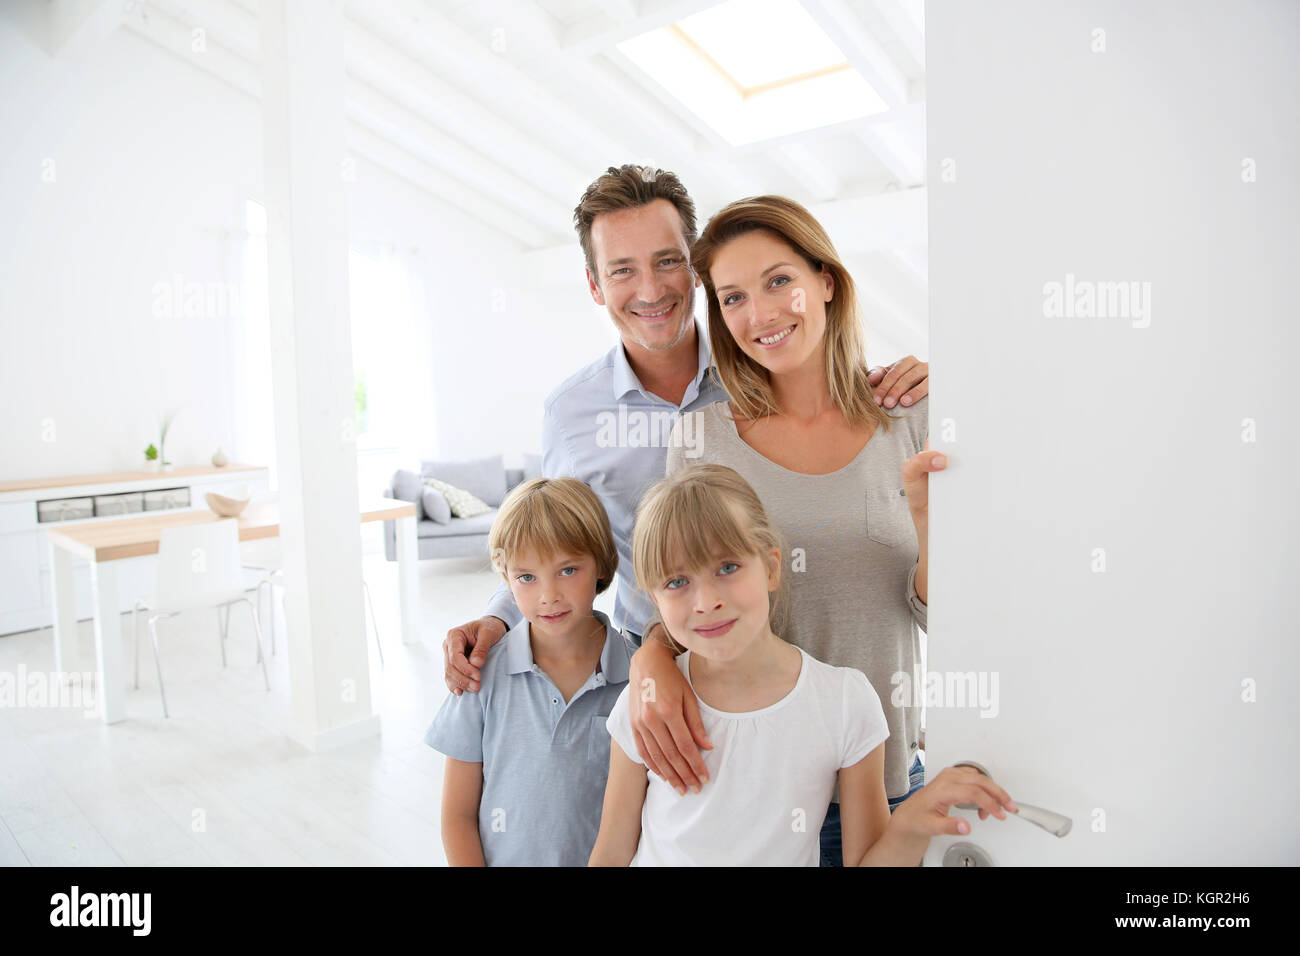 Family welcoming people at entrance door - Stock Image